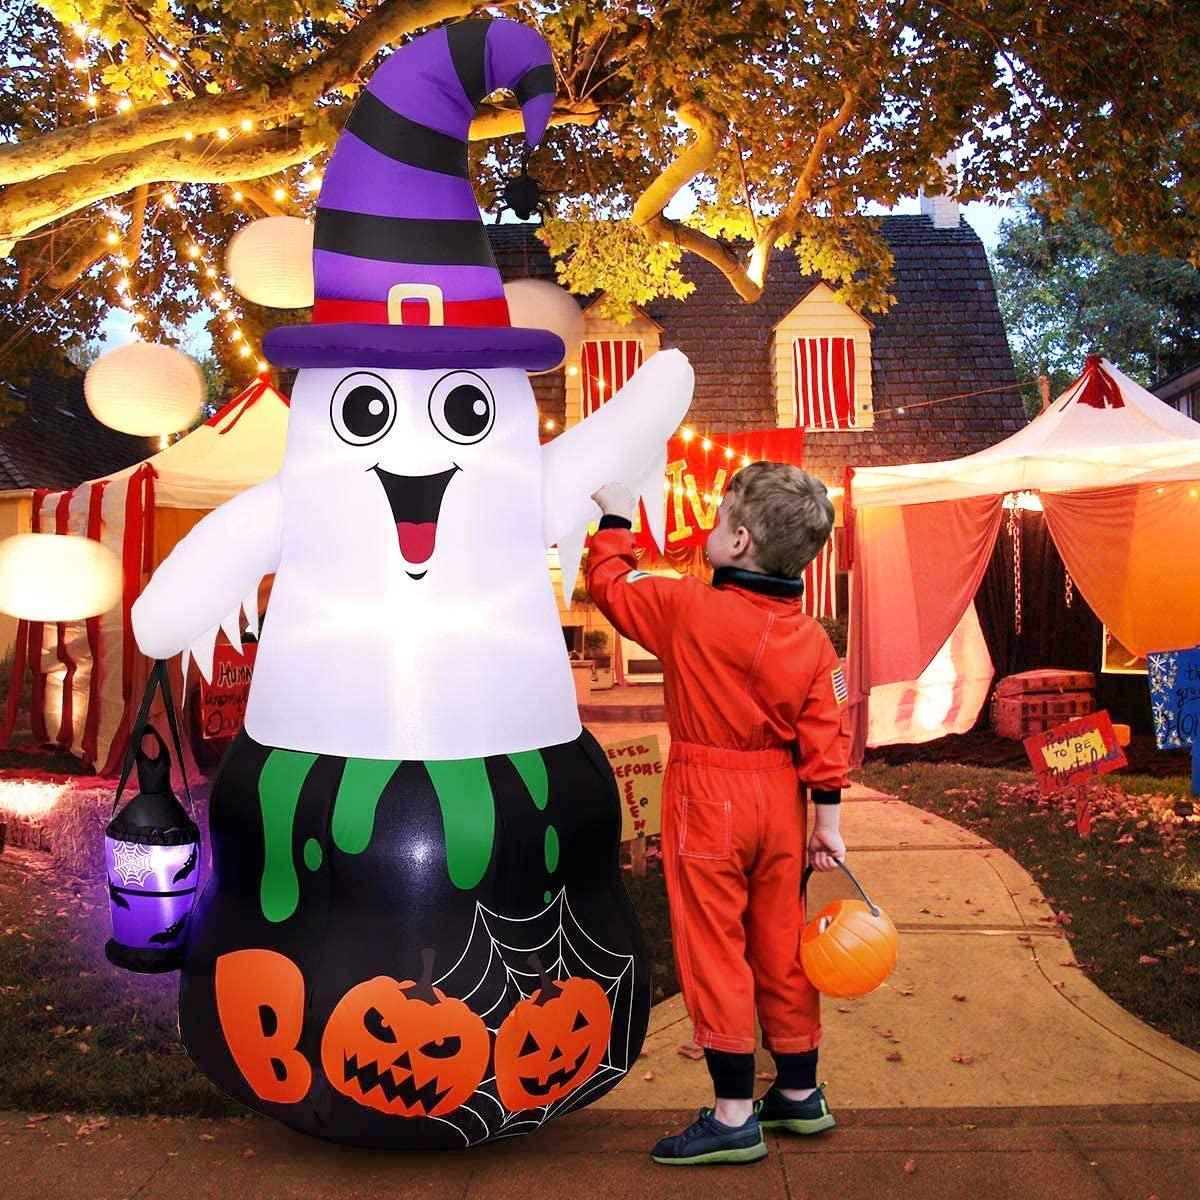 Halloween Inflatables Halloween Blow Up Ghost Decorations, Built in LED Light with Stakes for Outdoor Decorations 5 FT